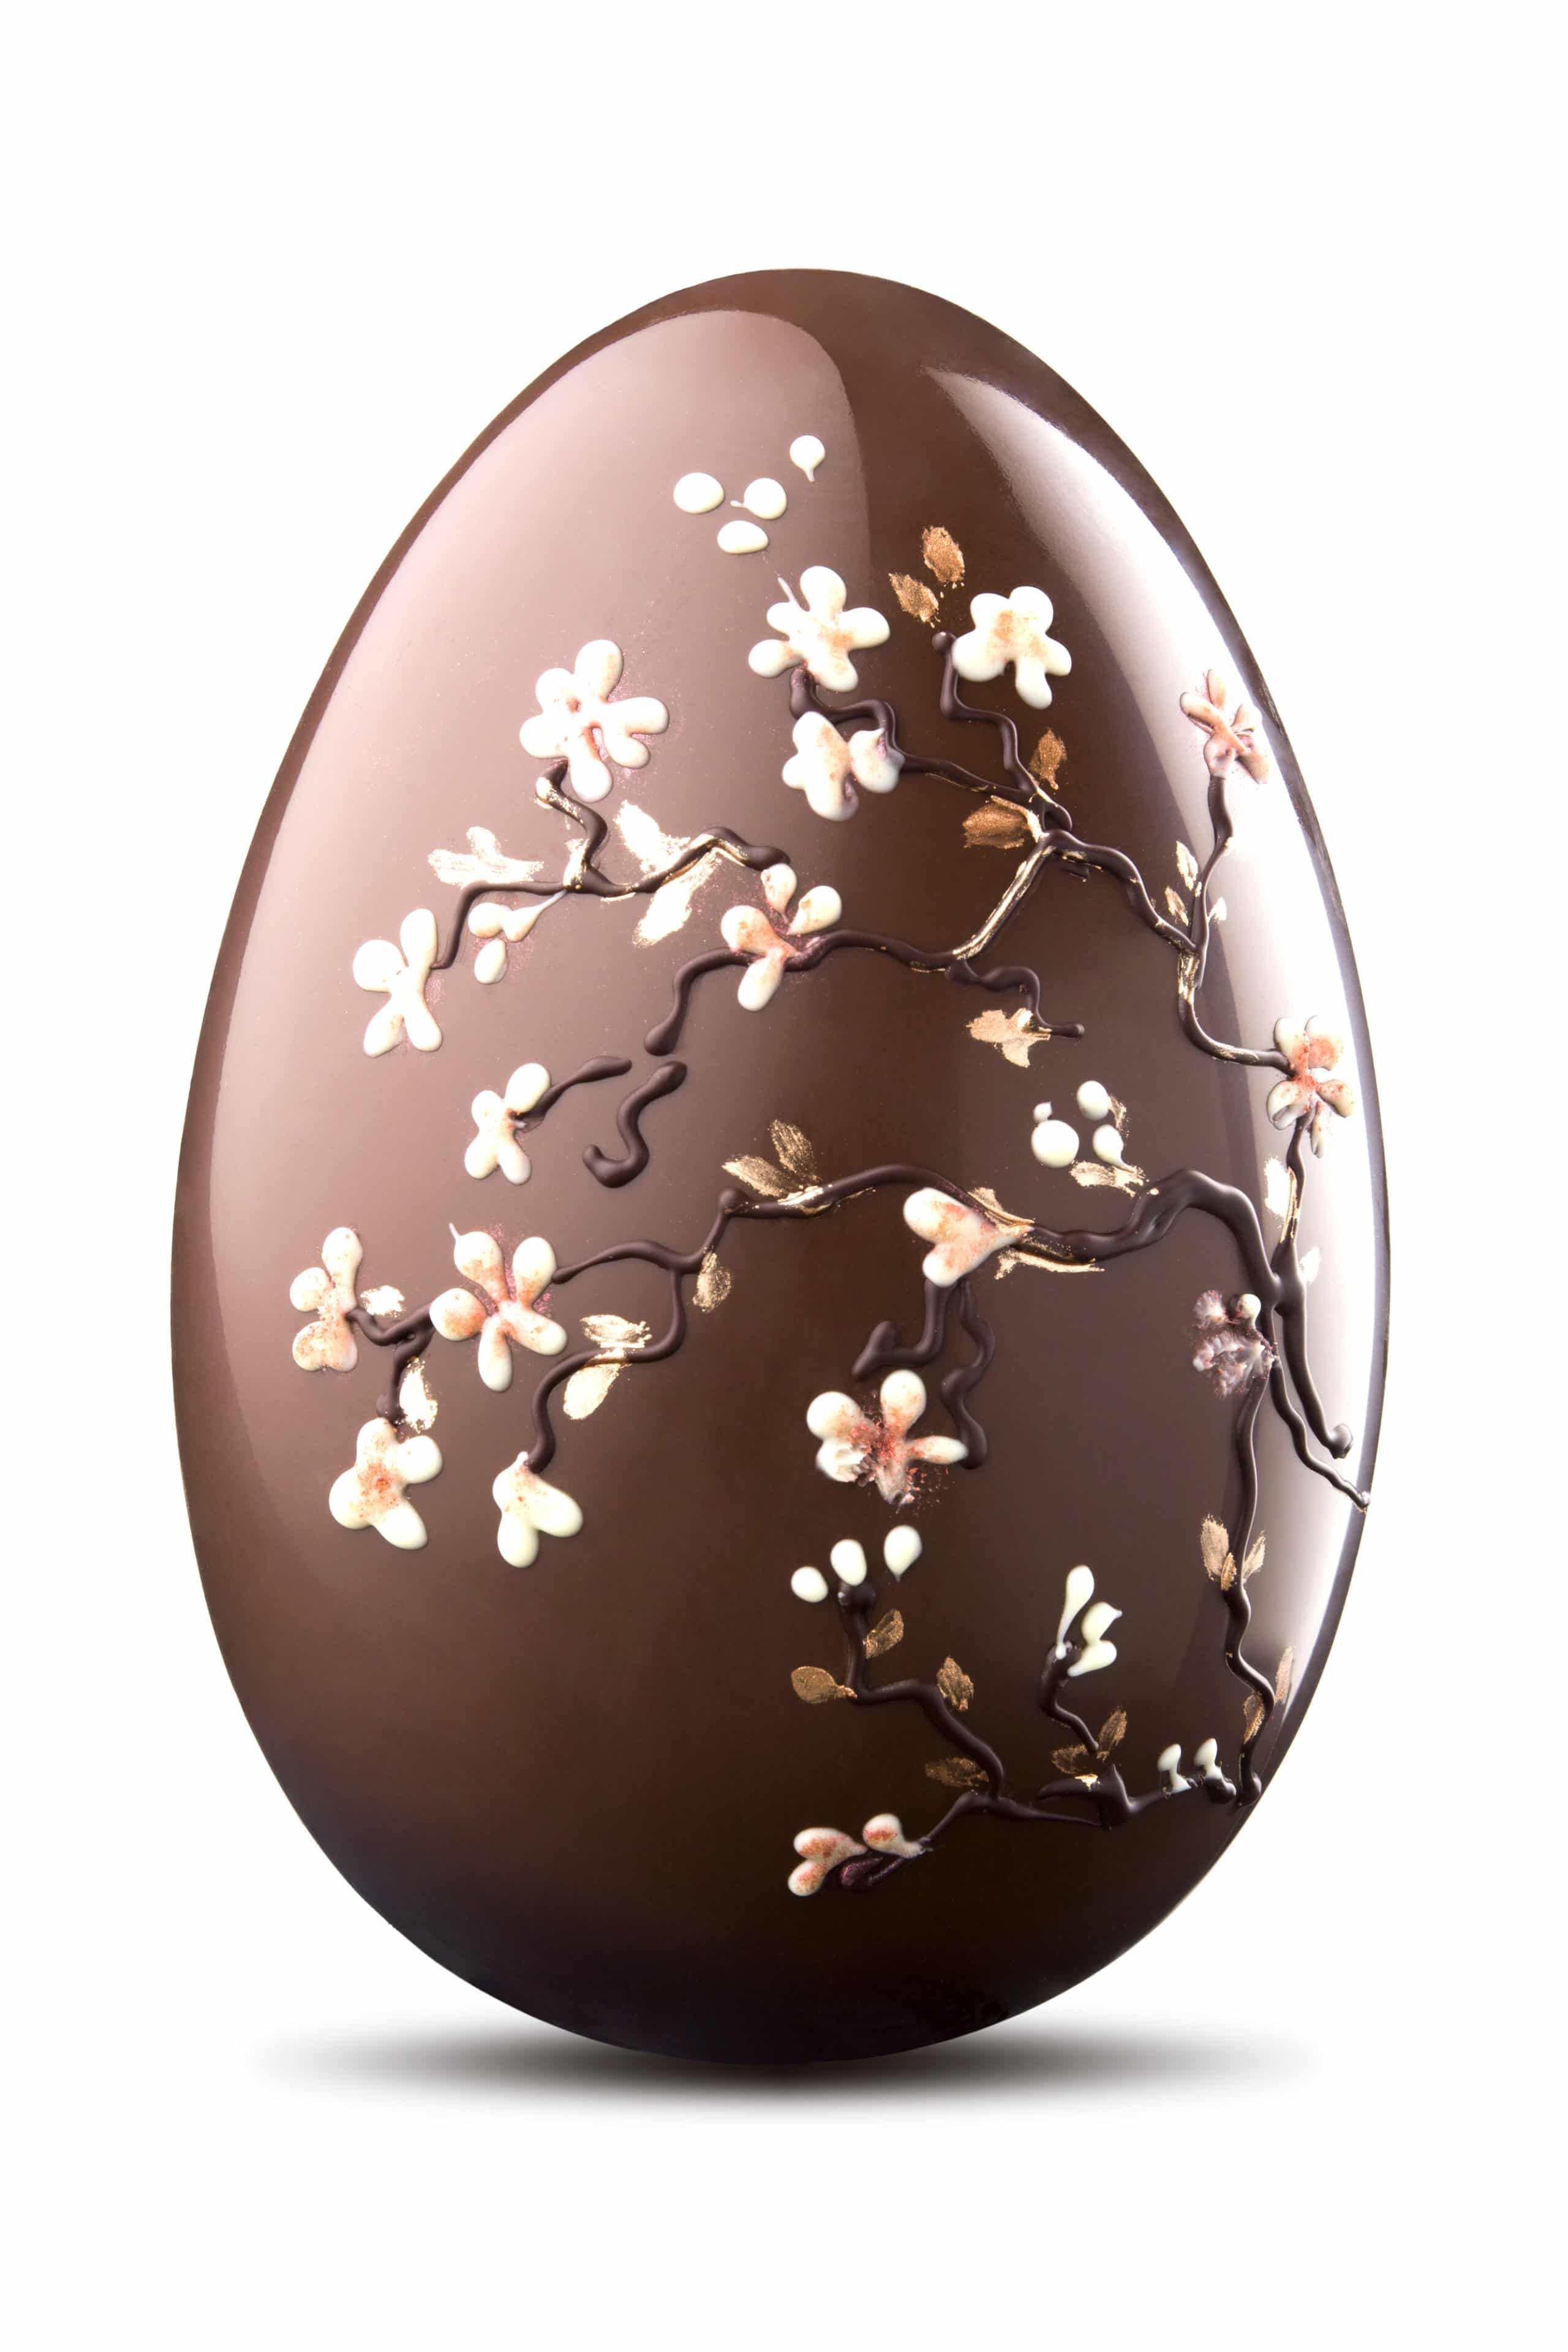 Cherry Blossom Easter Egg - Milk Chocolate - Lick the Spoon